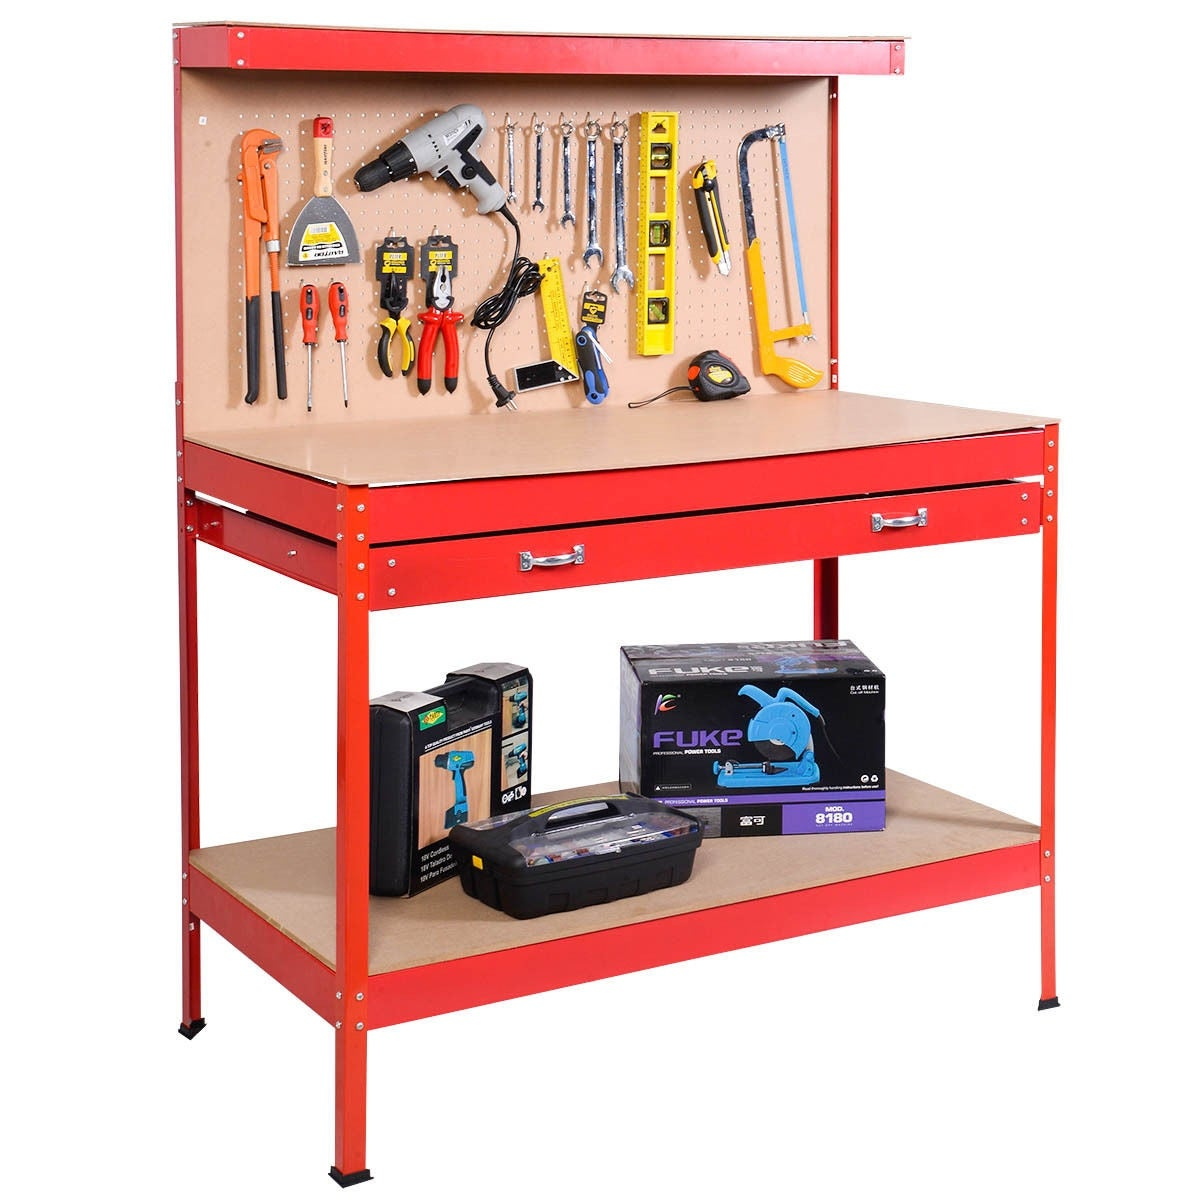 Astounding Costway Work Bench Tool Storage Steel Tool Workshop Table W Drawer And Peg Board Red Beatyapartments Chair Design Images Beatyapartmentscom